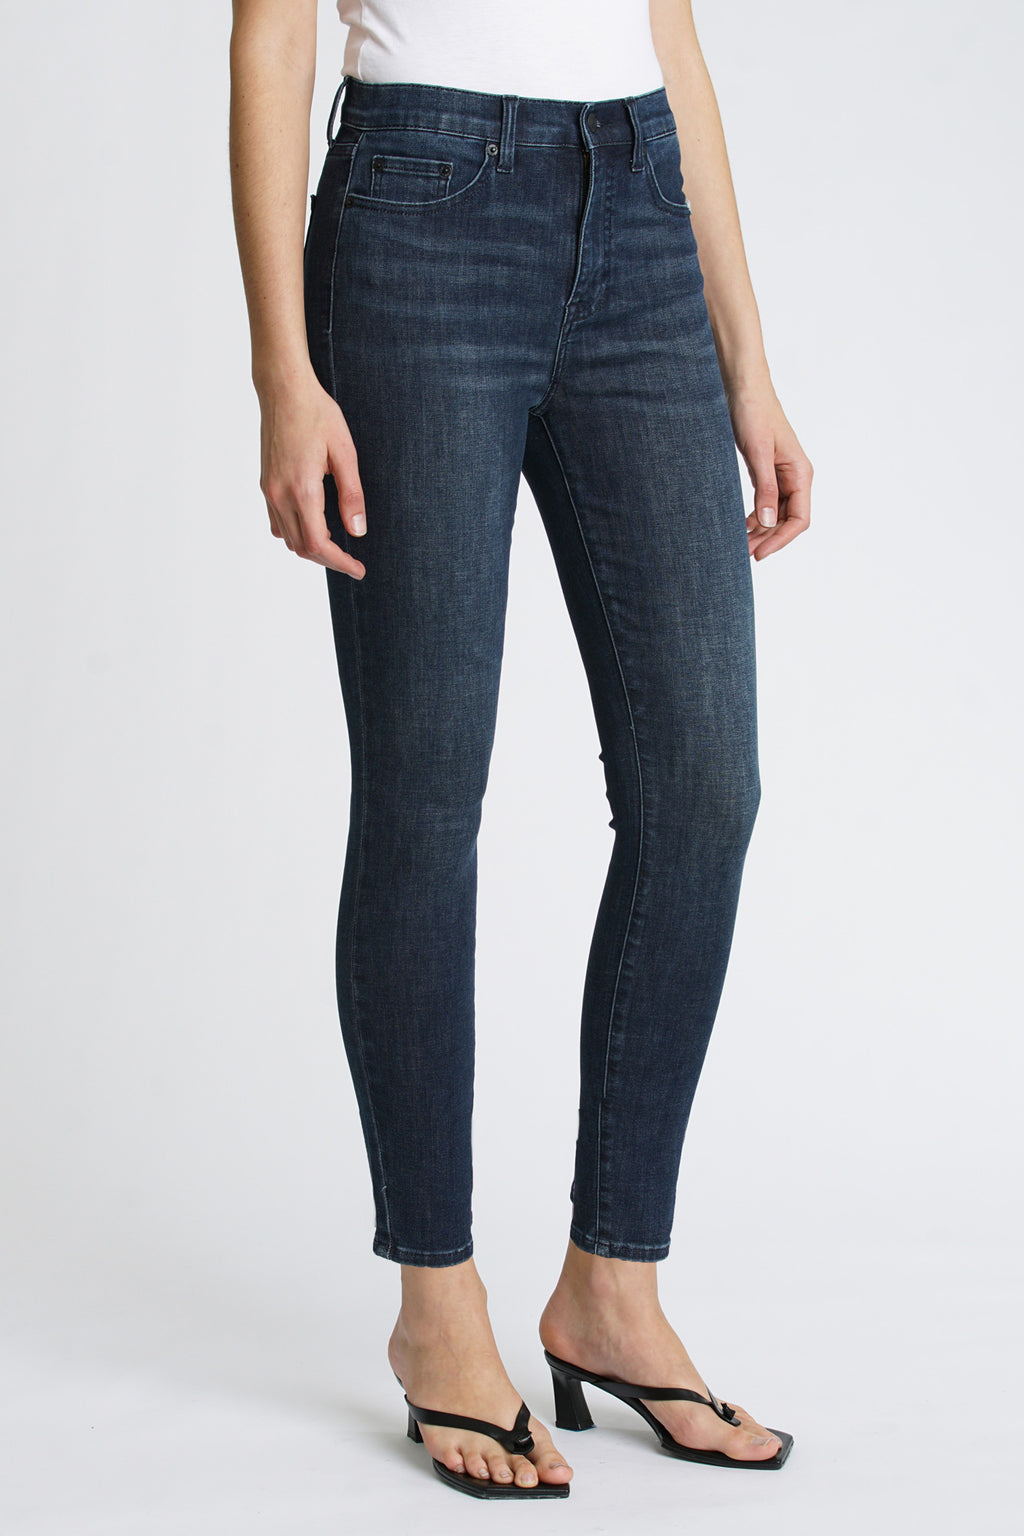 Aline High Rise Skinny - Lake Como